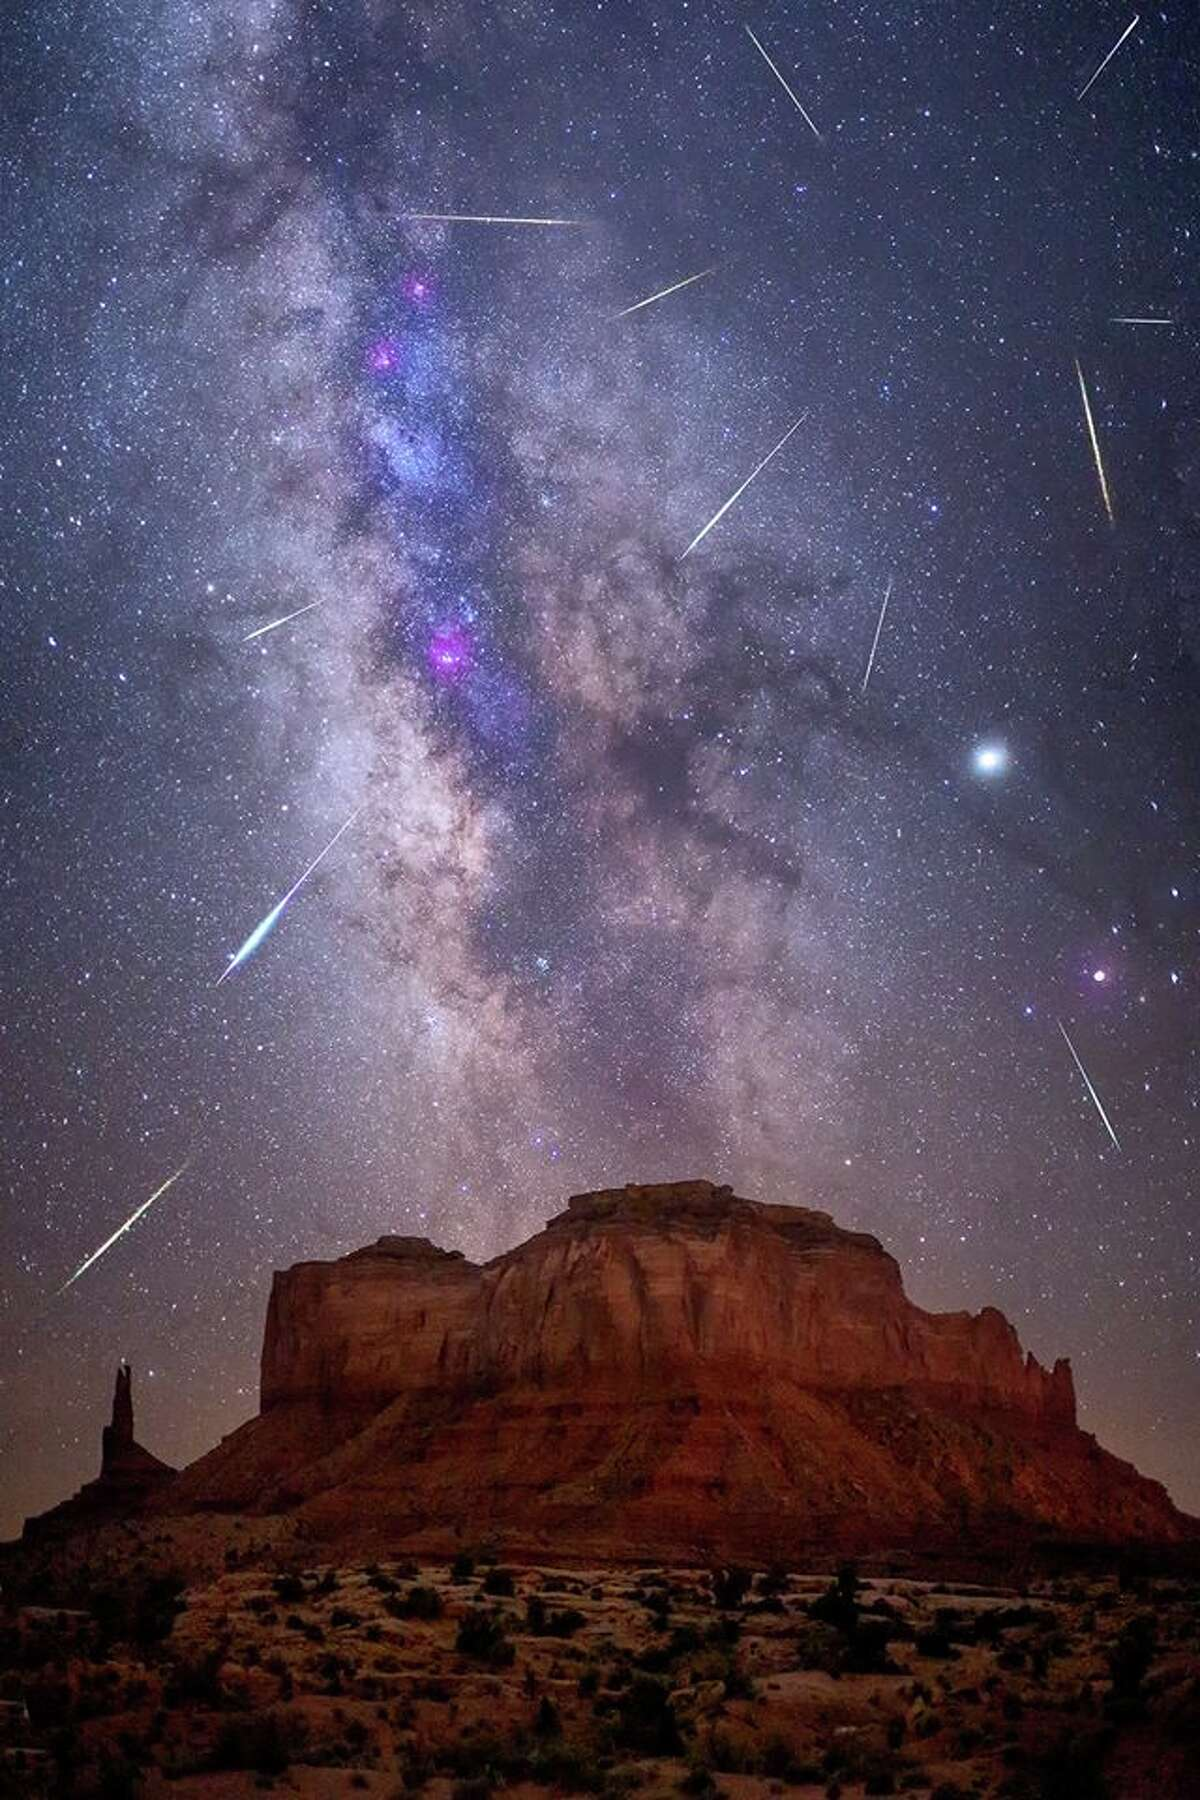 Perseid meteor shower When: Aug. 12-13 The Perseid meteor shower is regularly one of the top three meteor showers of the year, and the 2020 showing in mid-August will be much better than the one from 2019.